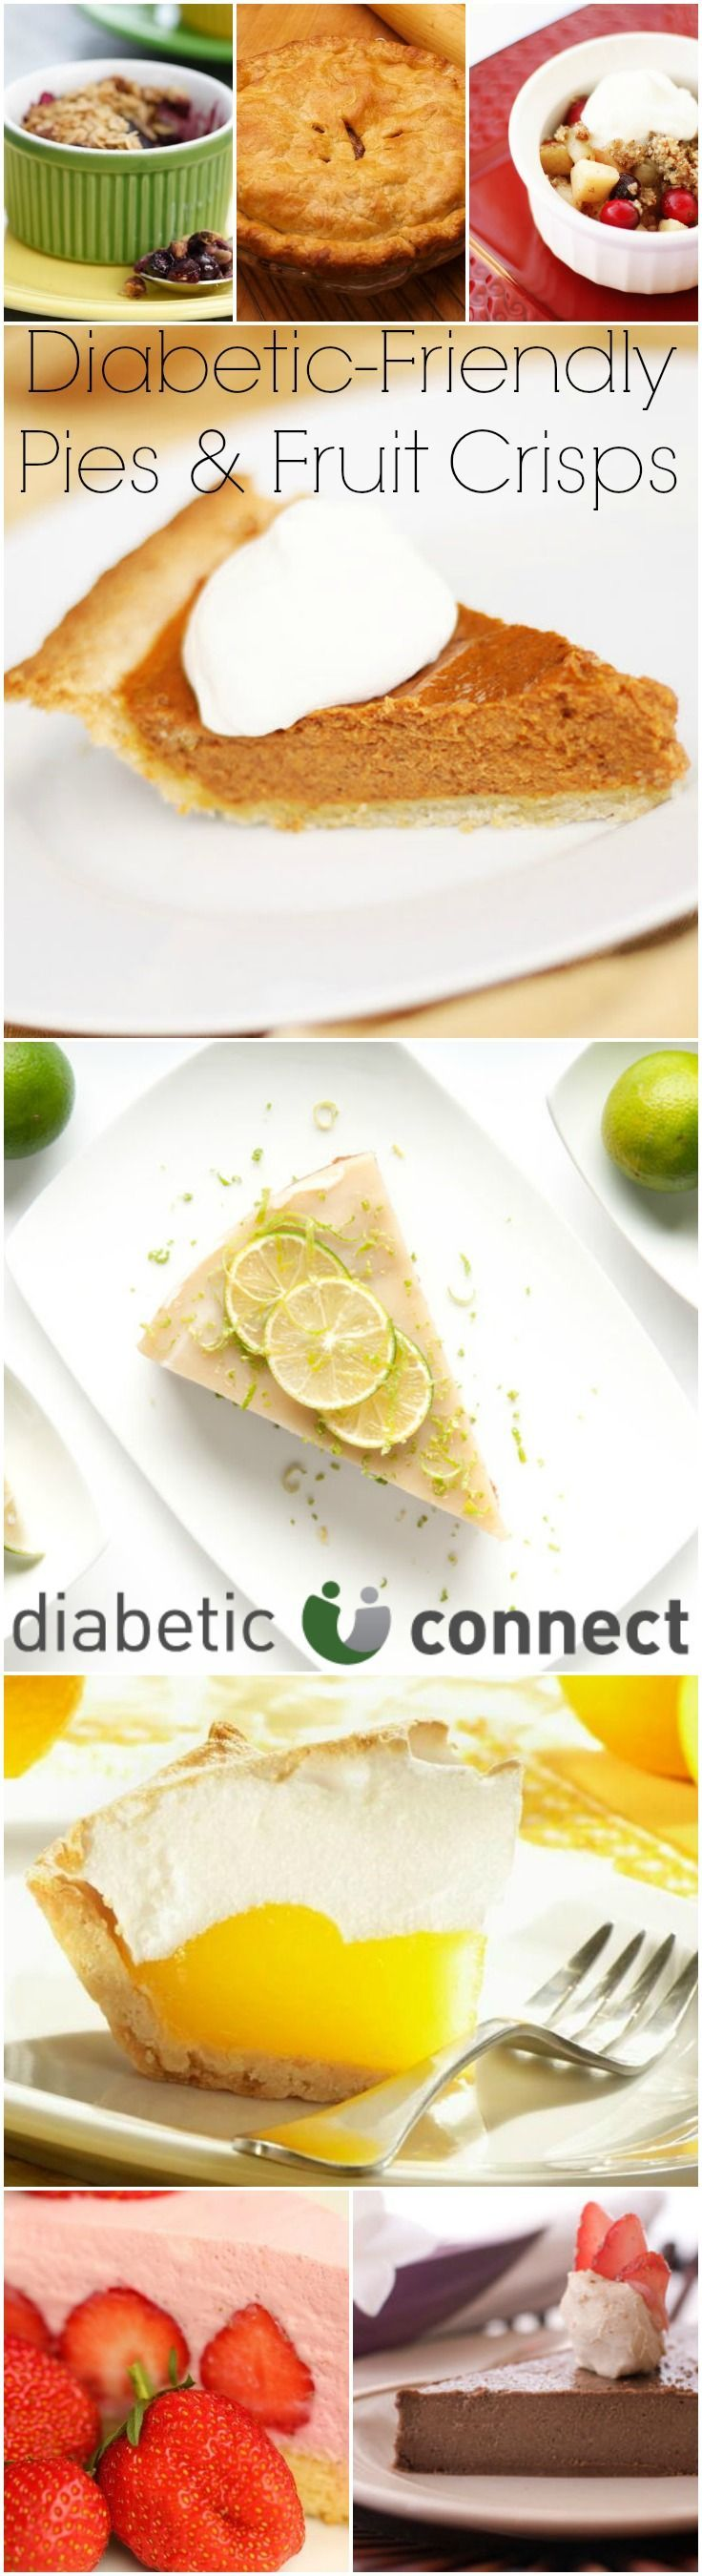 268 best images about recipes diabetes friendly on